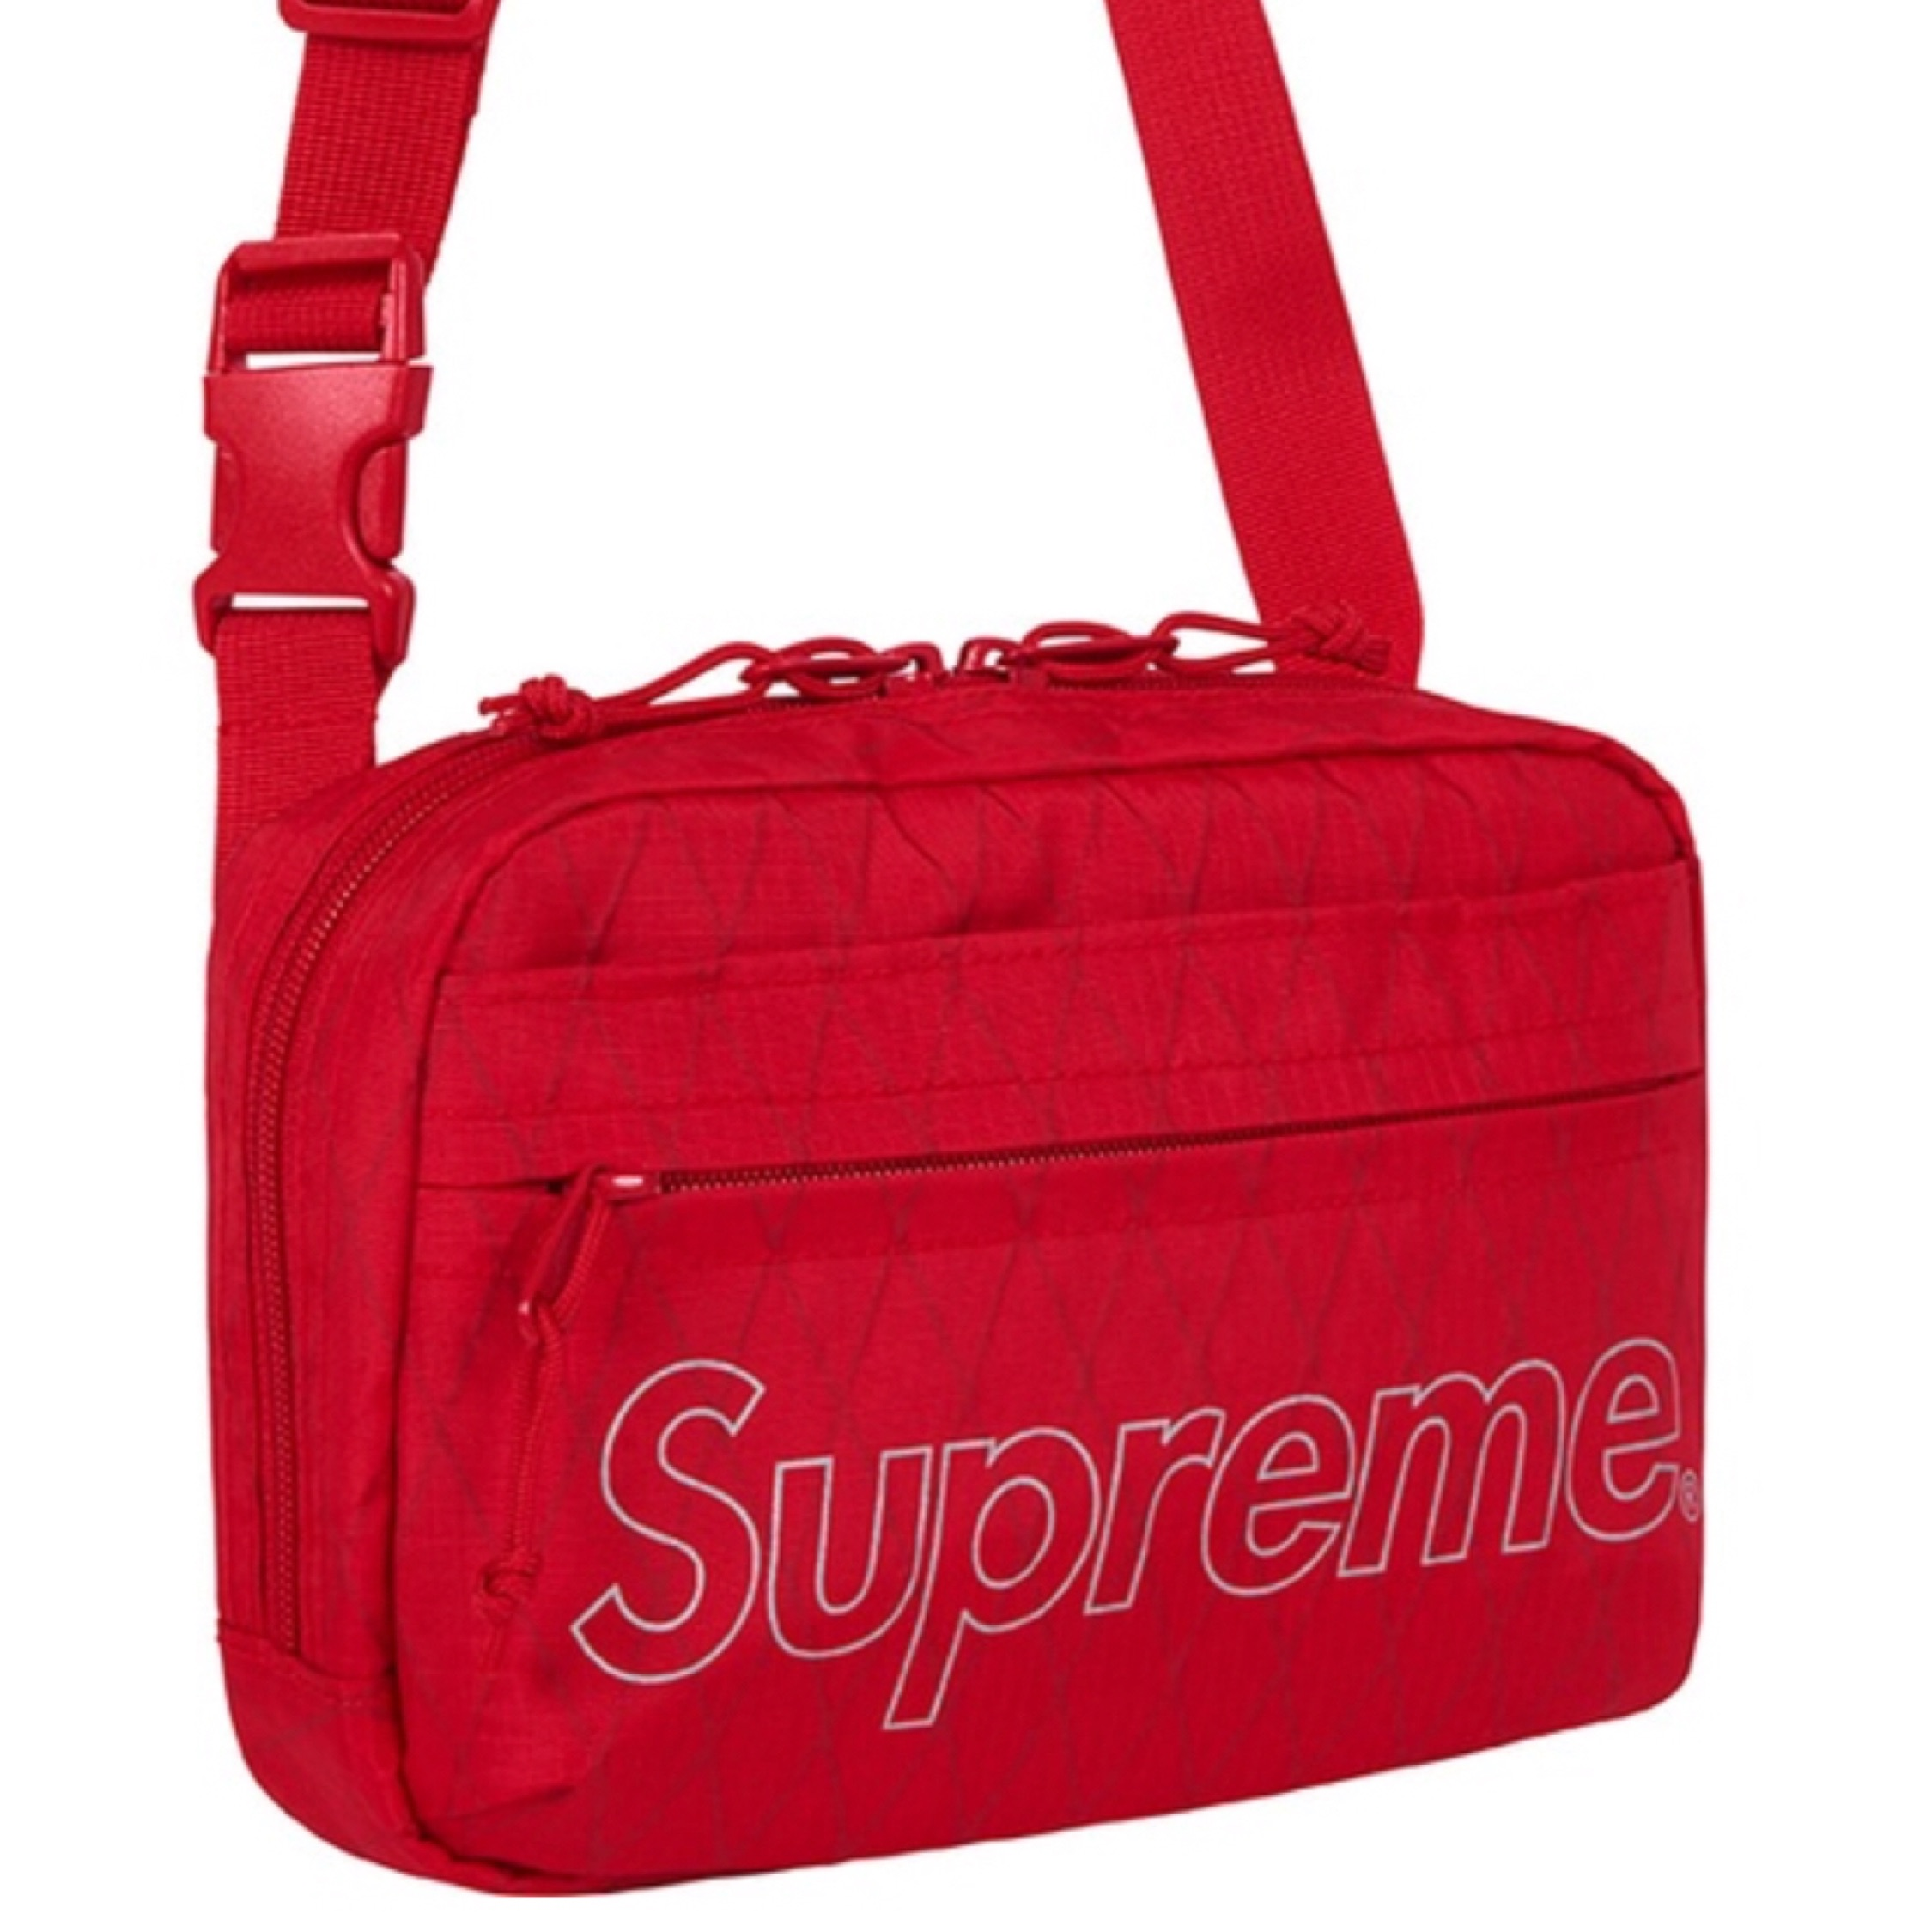 FW18 Ready To Ship NEW Supreme Shoulder Bag-Red